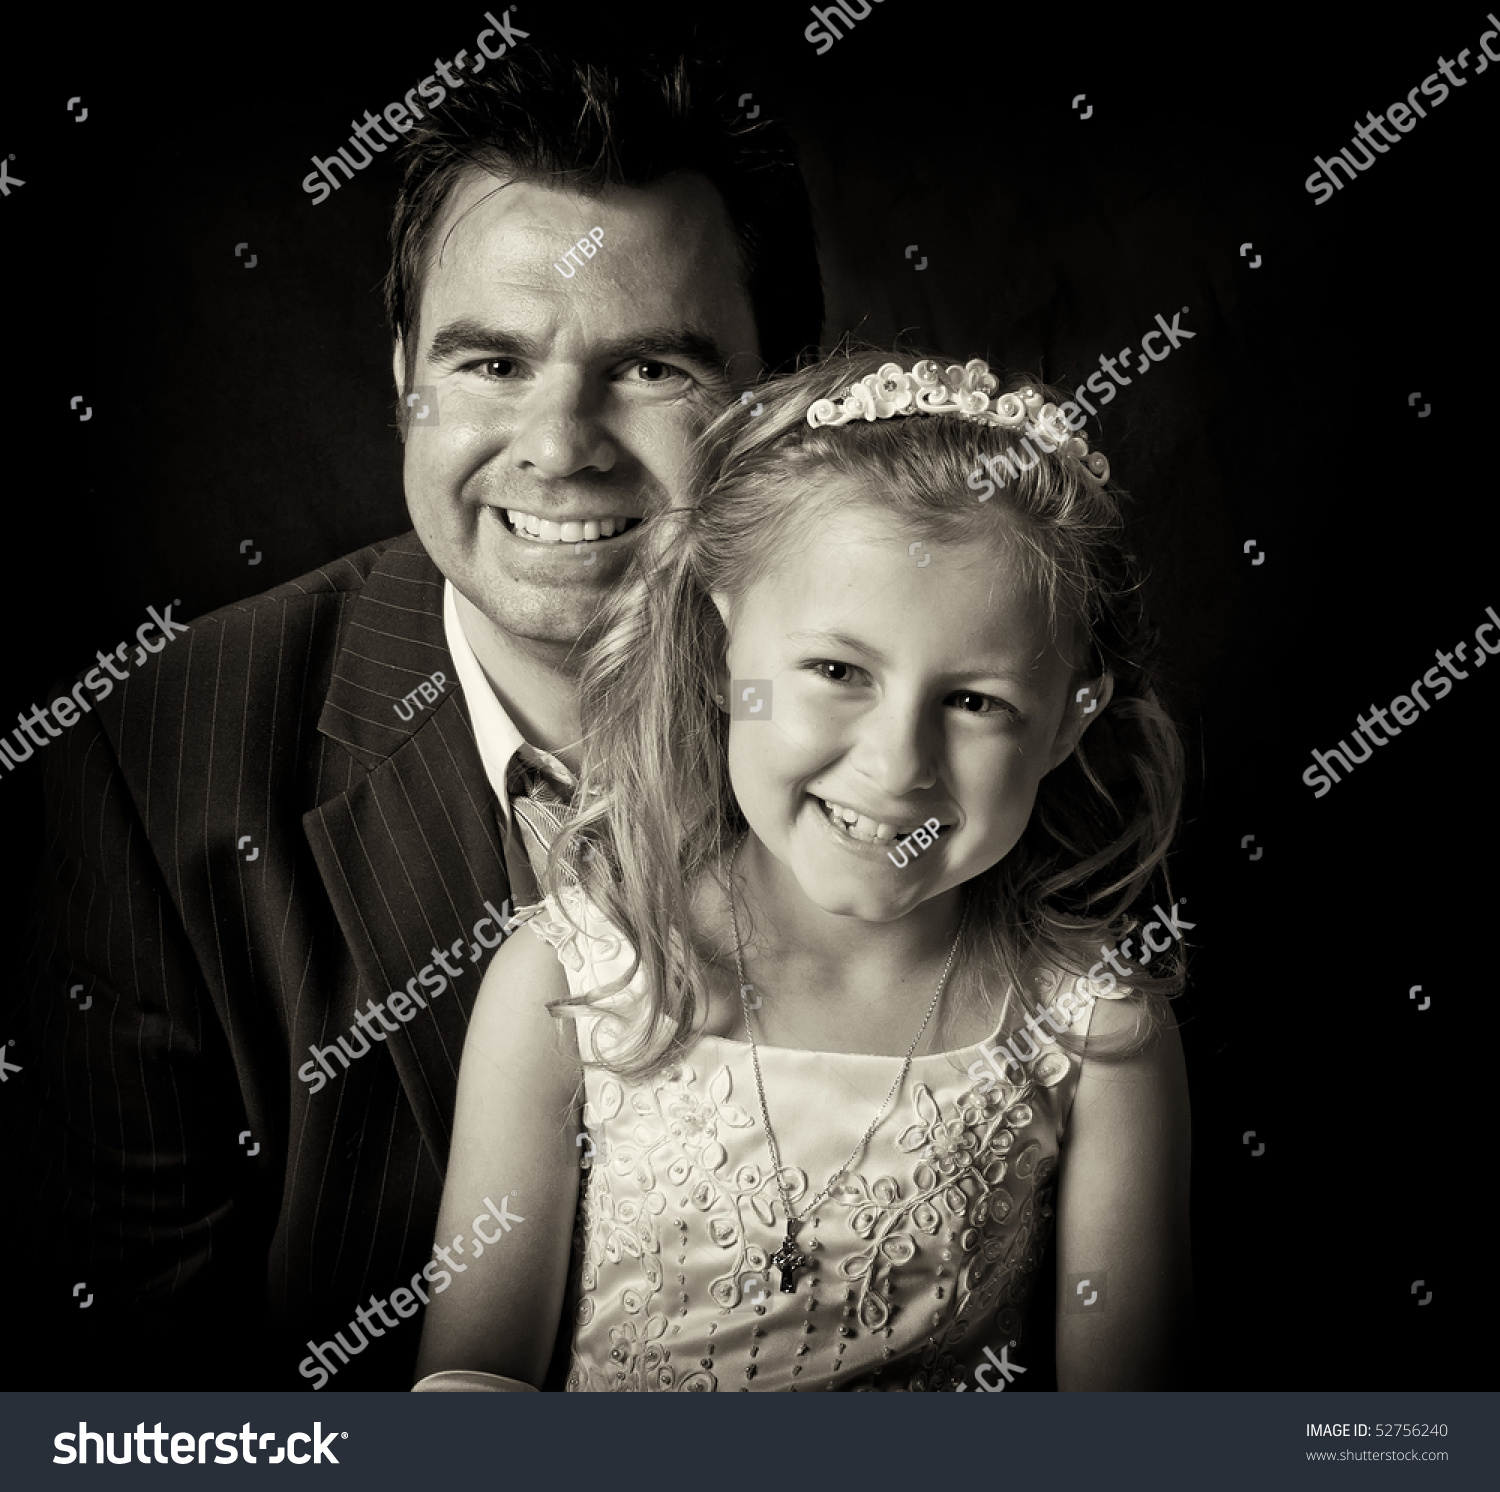 Happy family images black and white dress